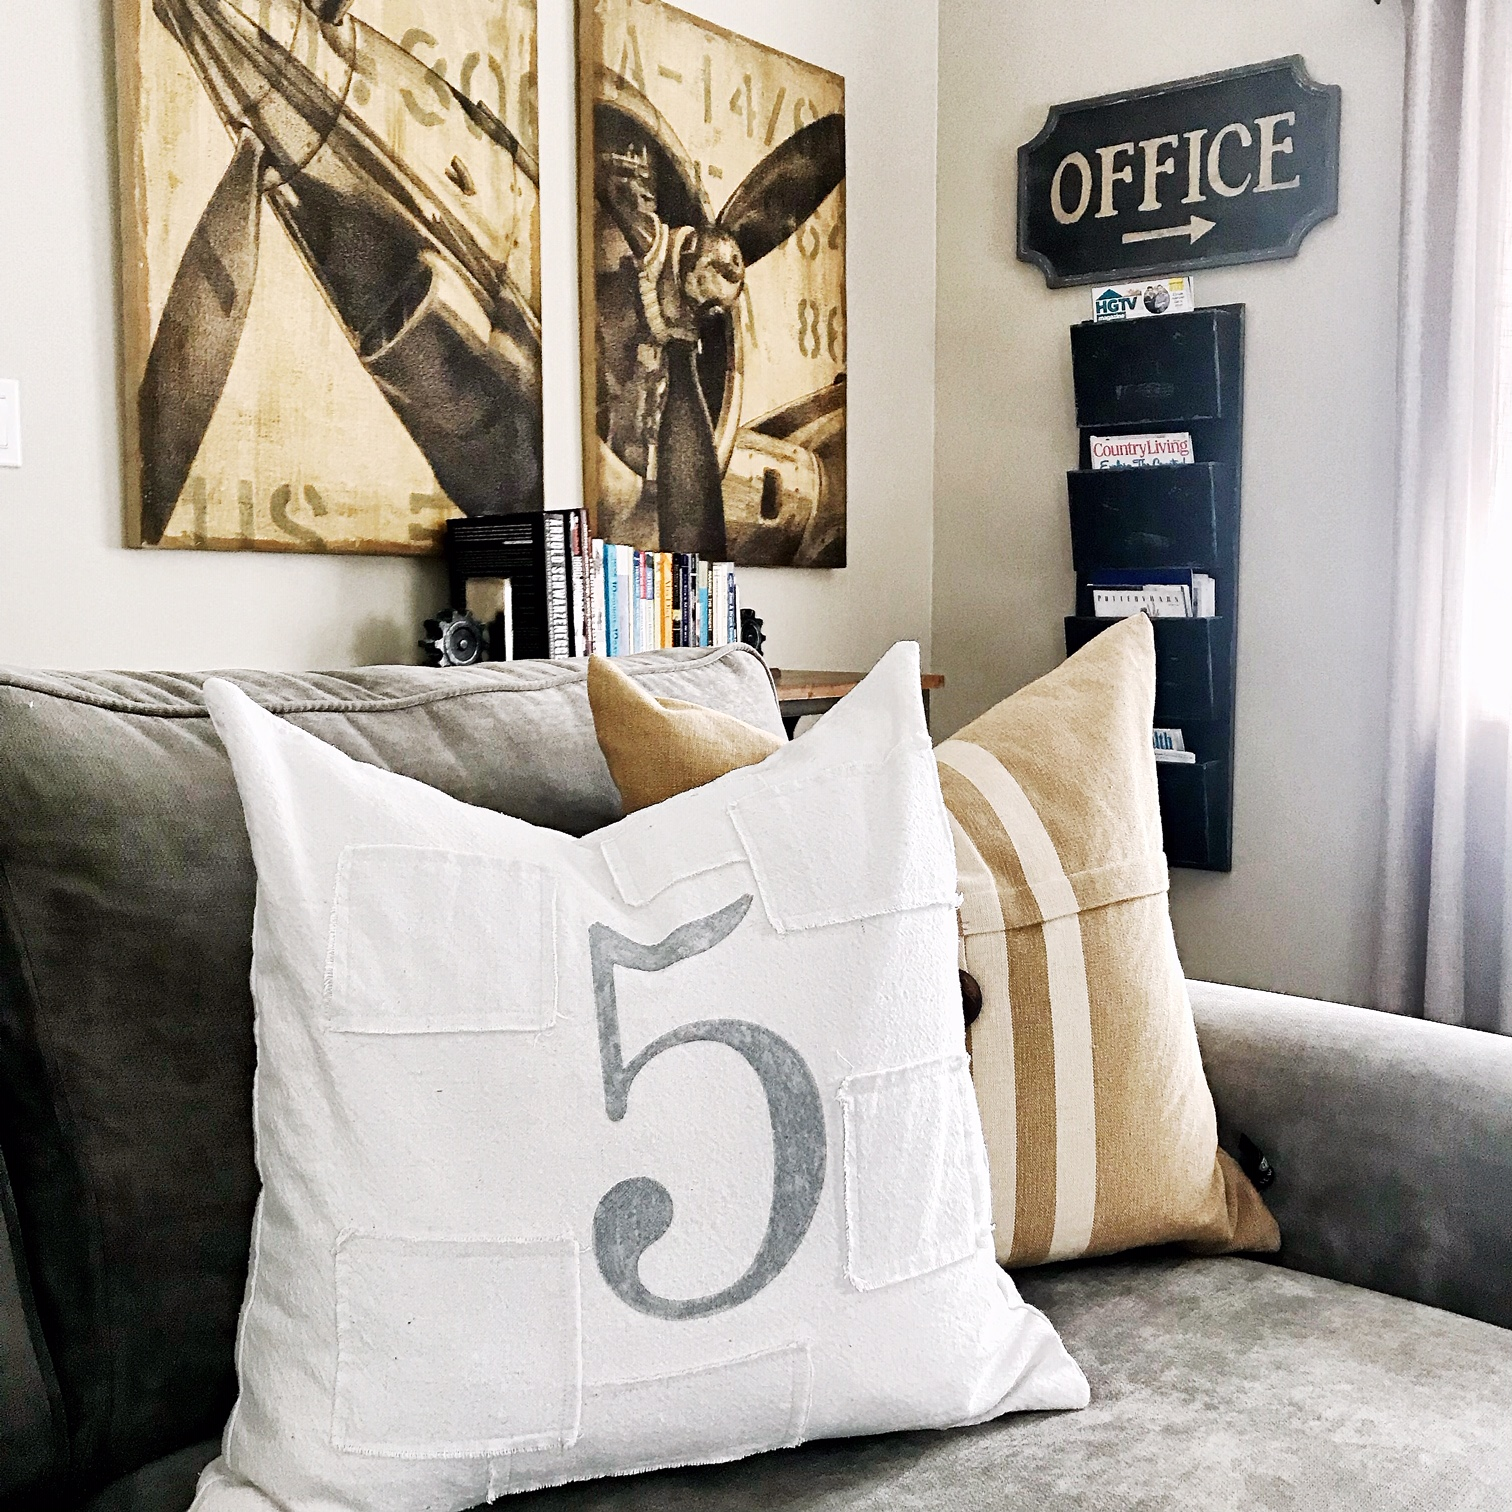 How Many Pillows Pillow Combinations For Beds Couches